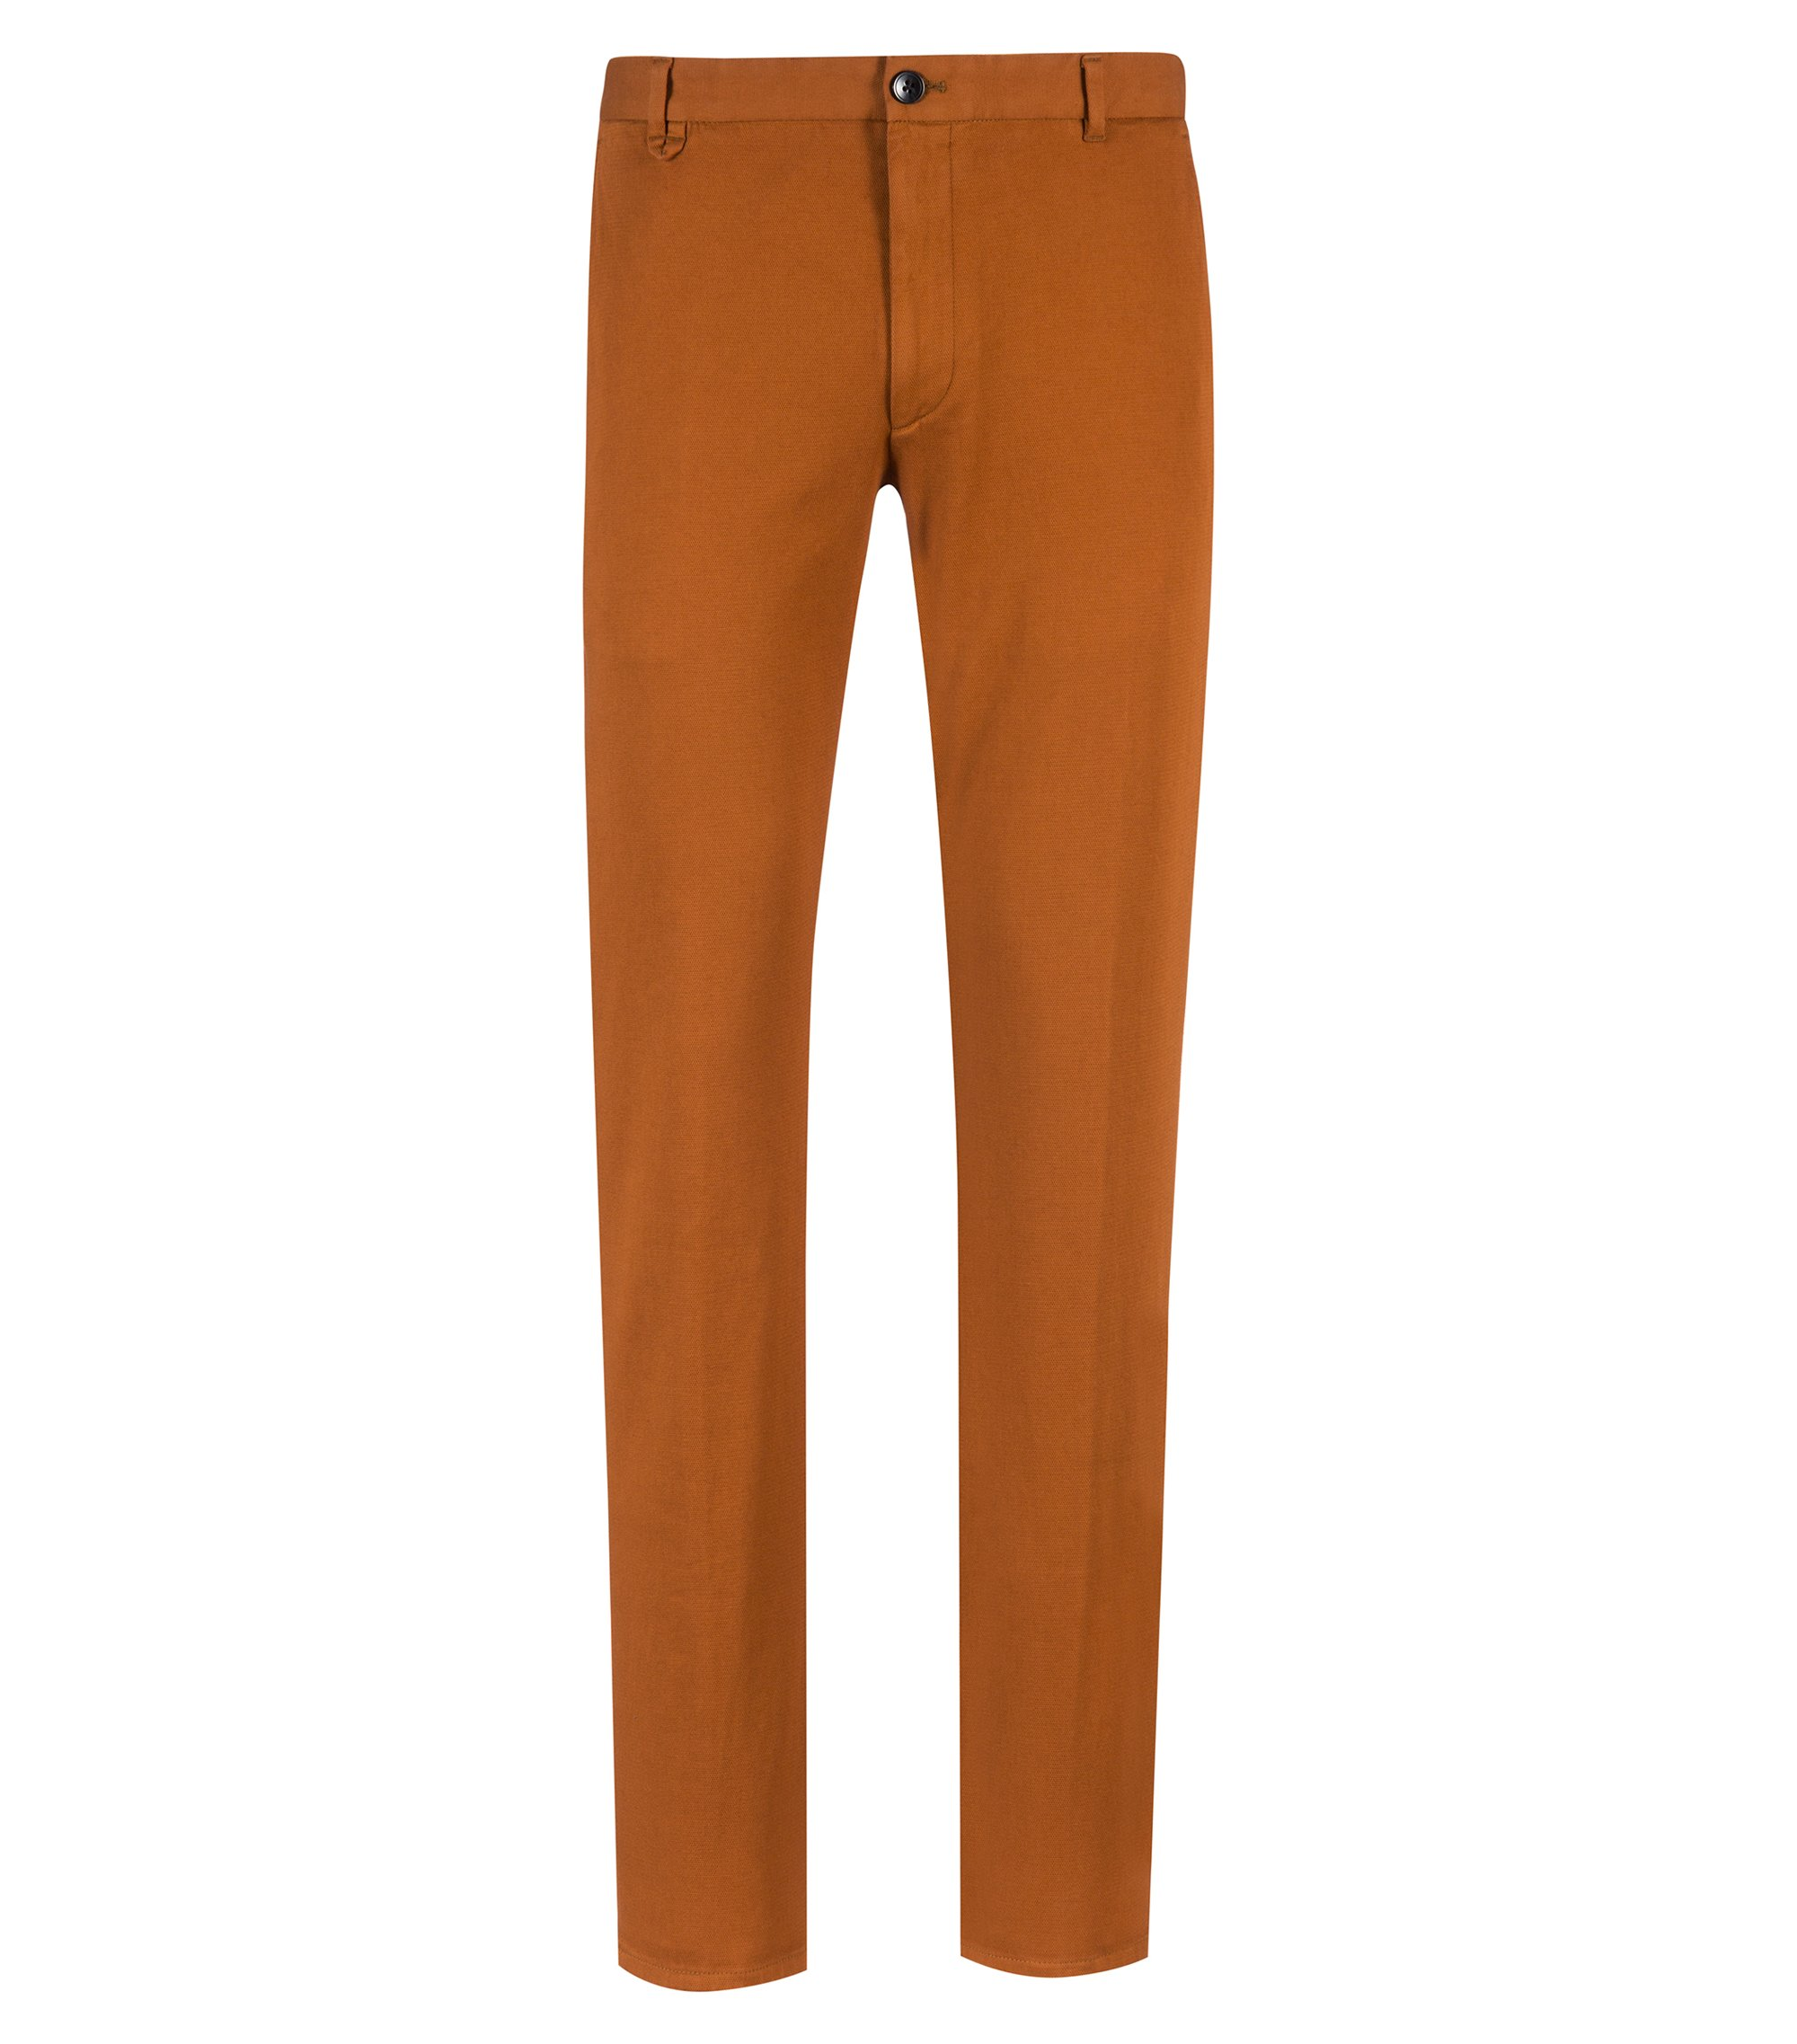 Pantalon Extra Slim Fit en coton stretch micro-structuré, Marron